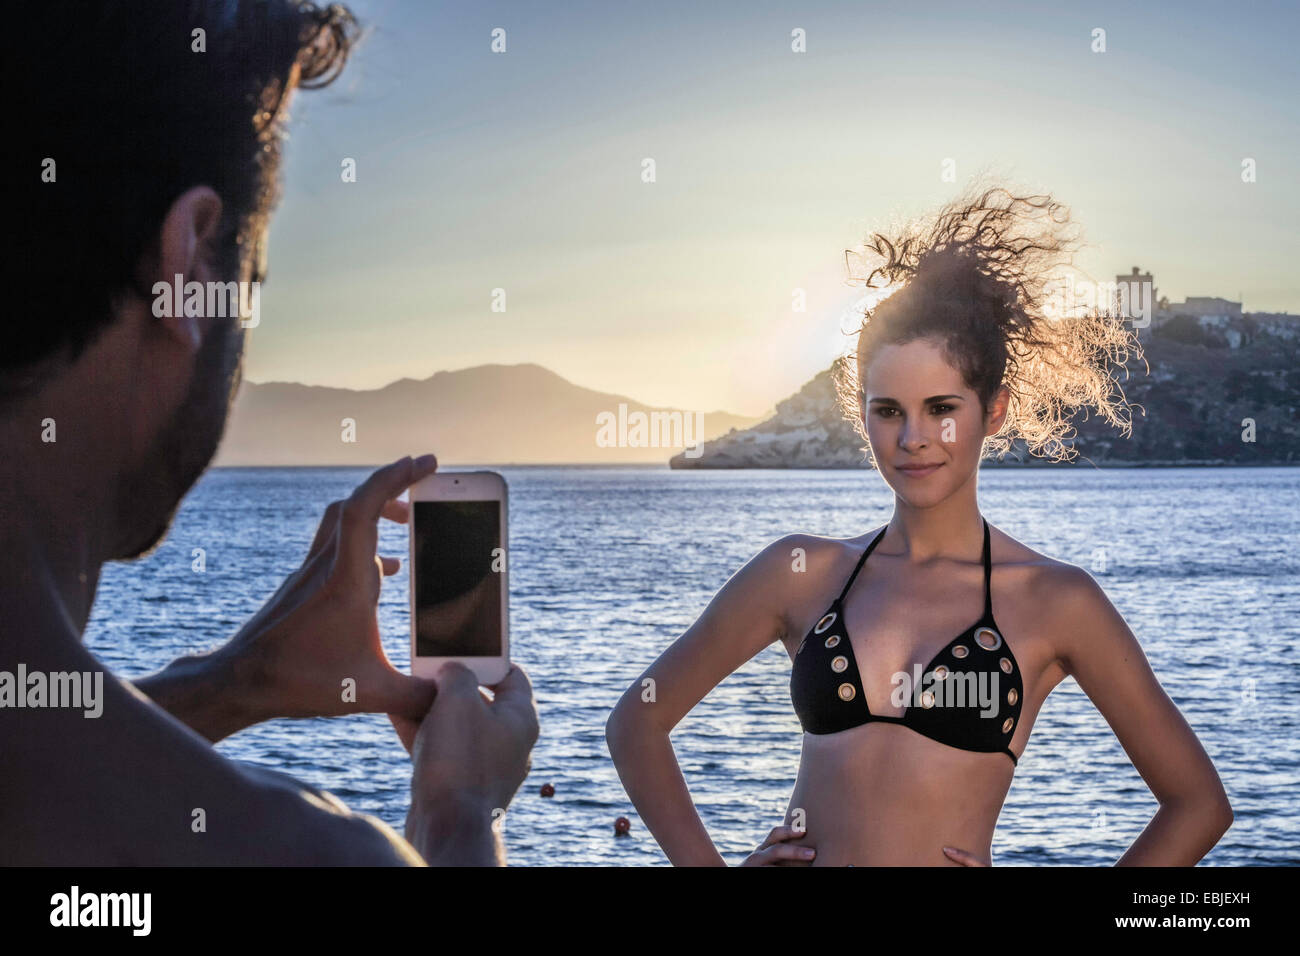 Man photographing young woman on vacation - Stock Image